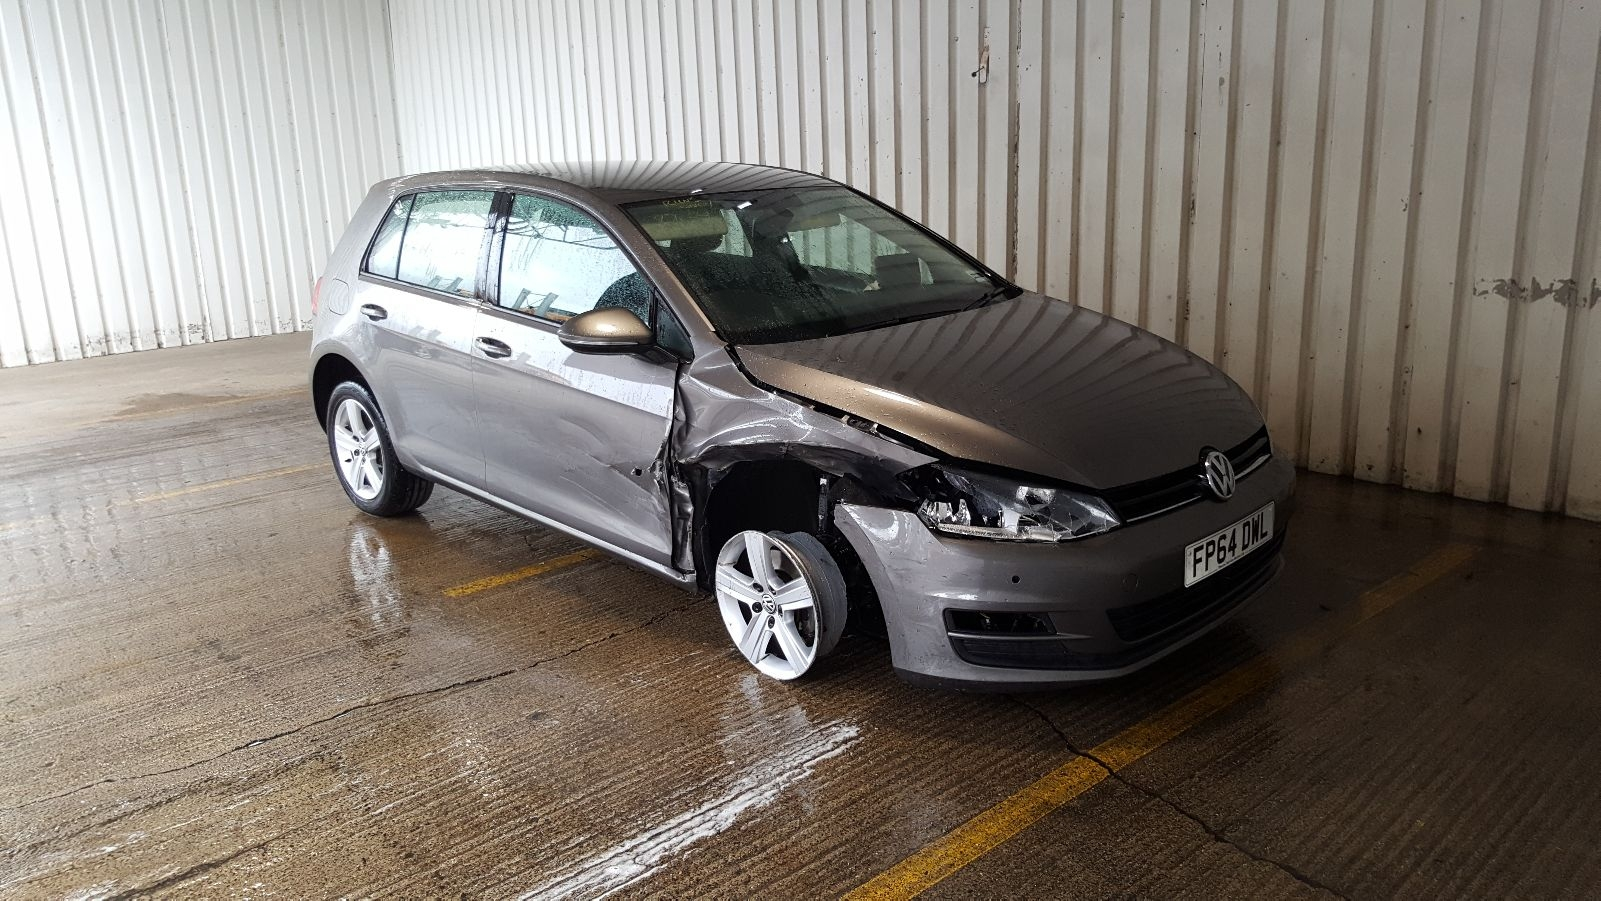 Image for a 2014 Volkswagen Golf 1.4 Petrol CXSA Engine